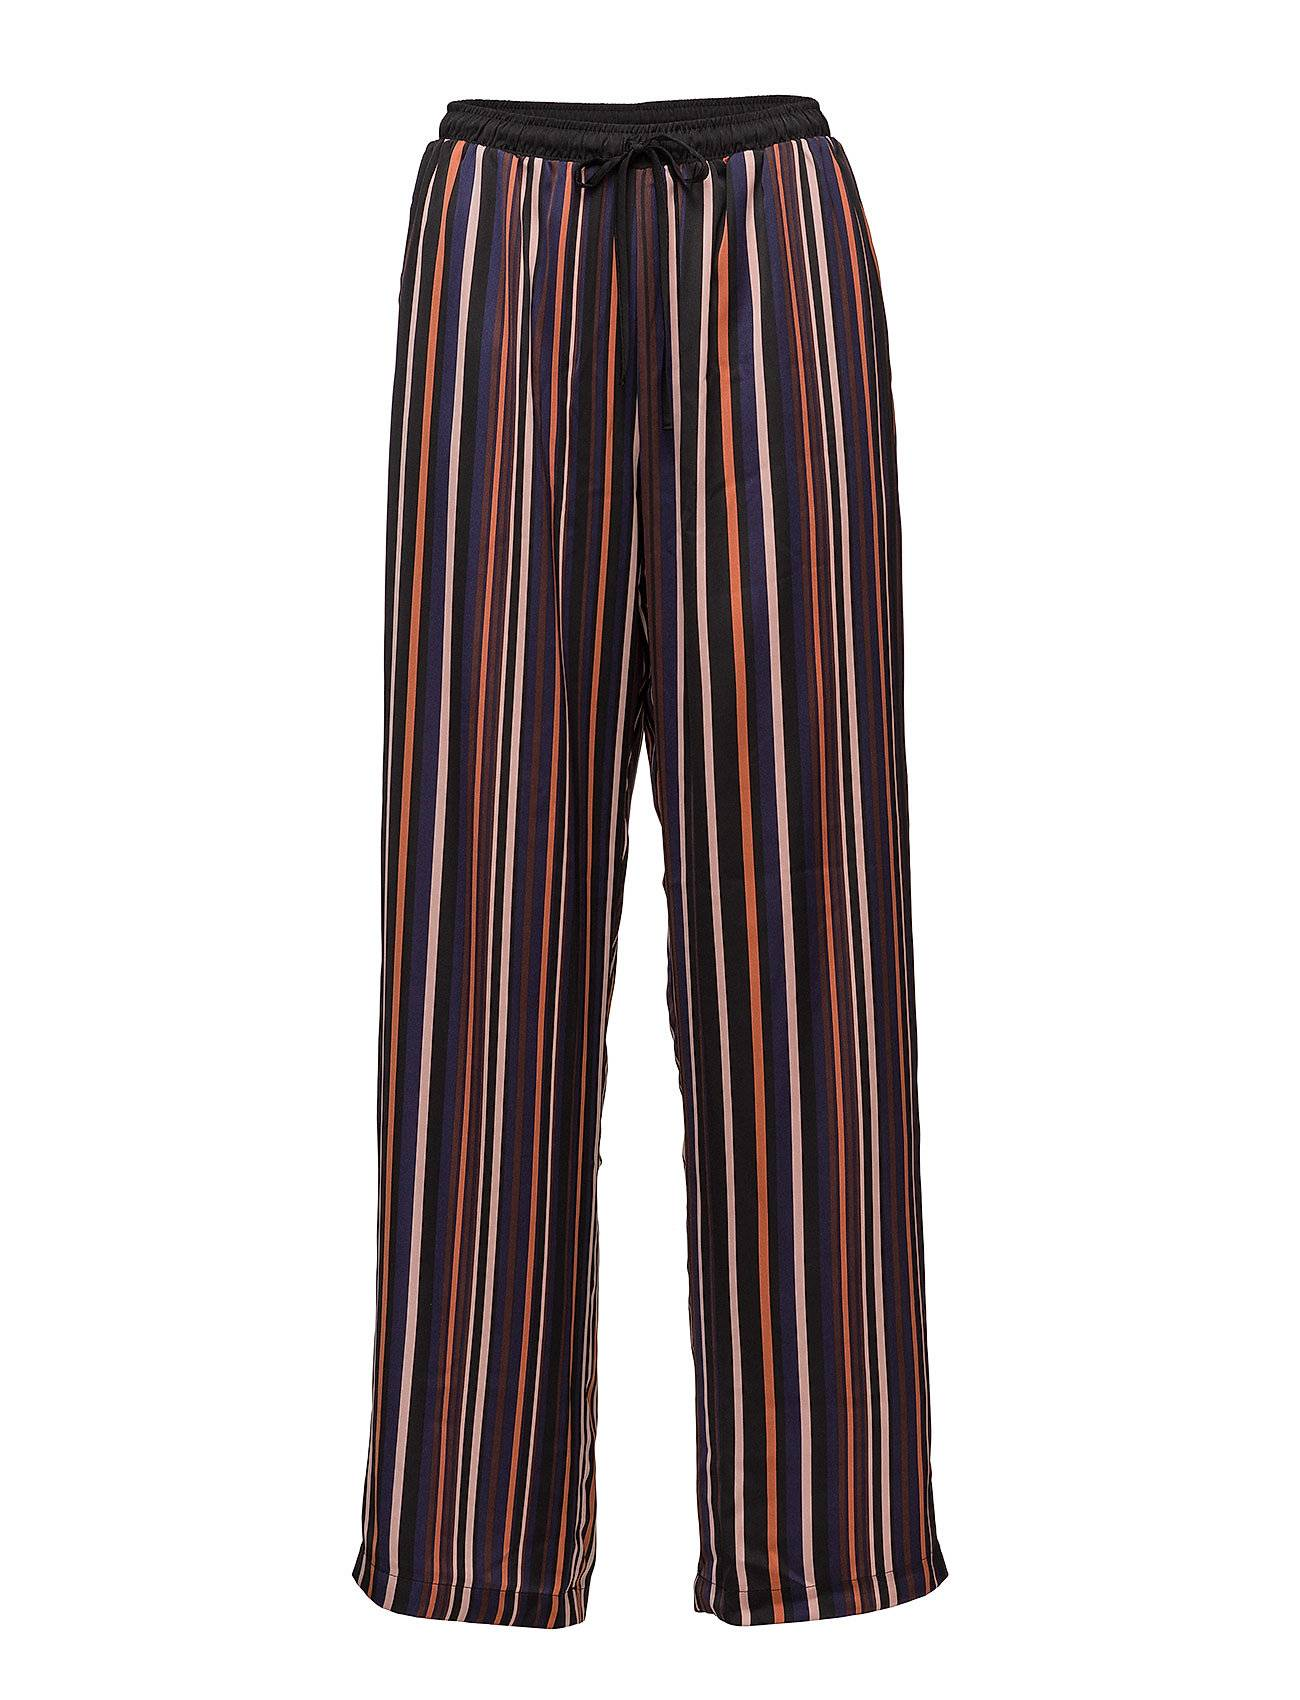 DKNY Homewear Dkny Look Of Luxe Pant